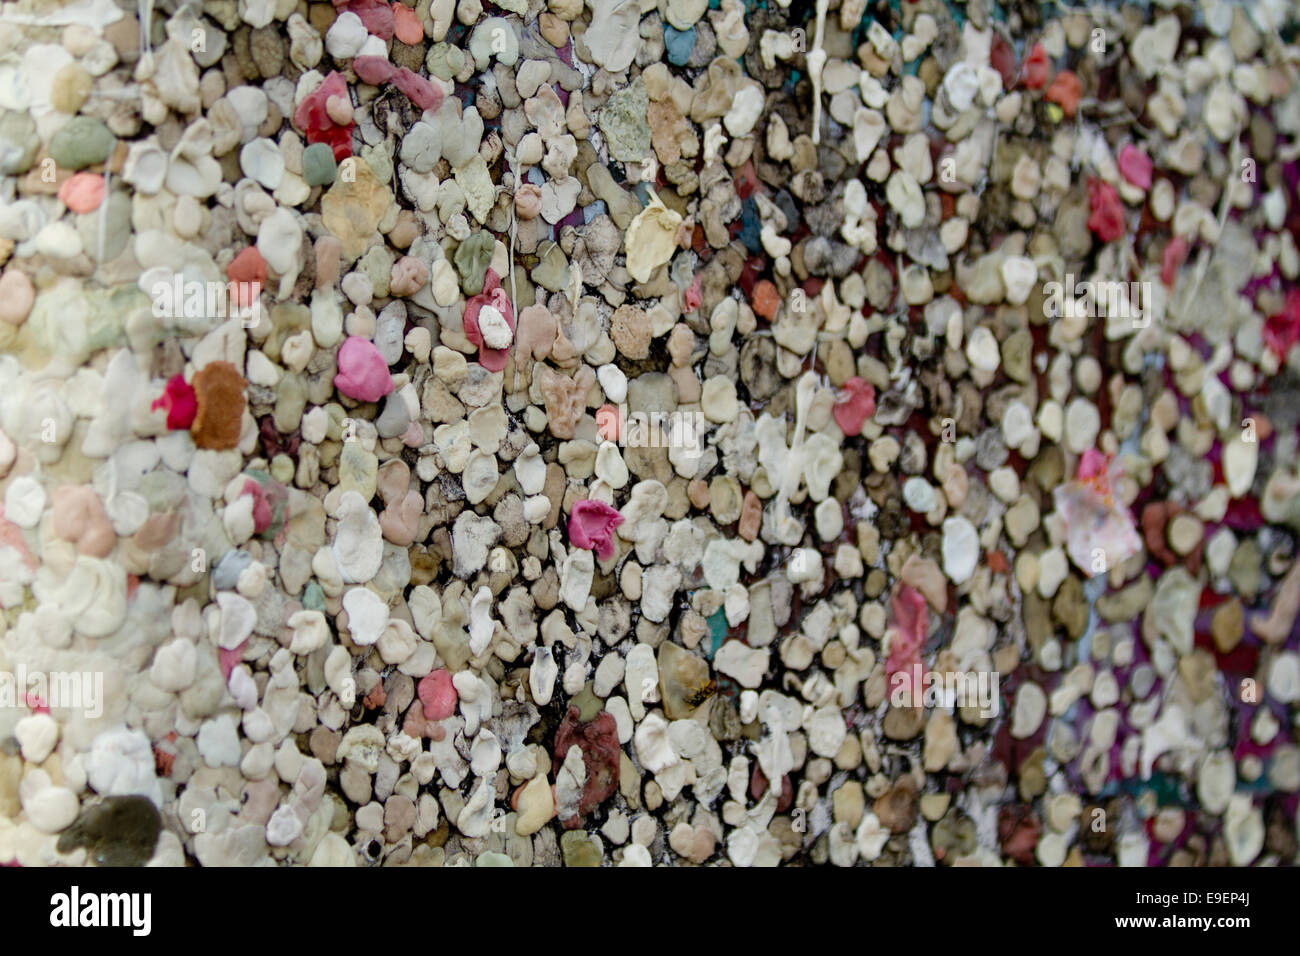 wall of chewing gum stuck on texture Berlin Wall - Stock Image